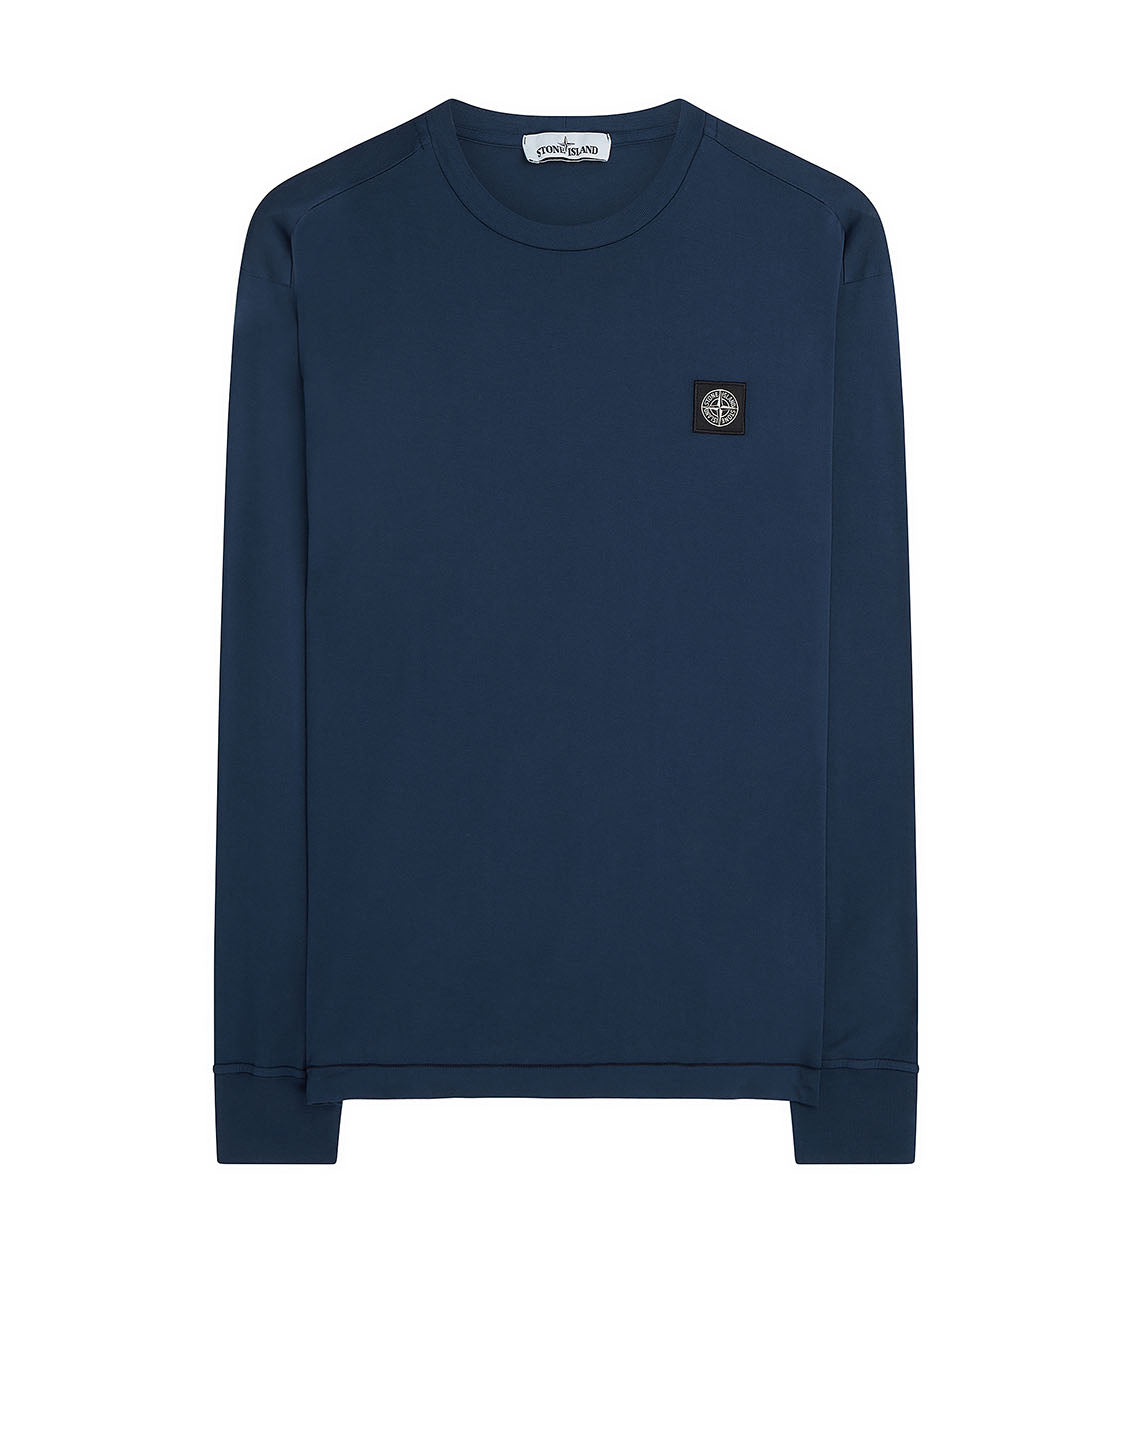 22713 Long Sleeve T-Shirt in Blue Marine